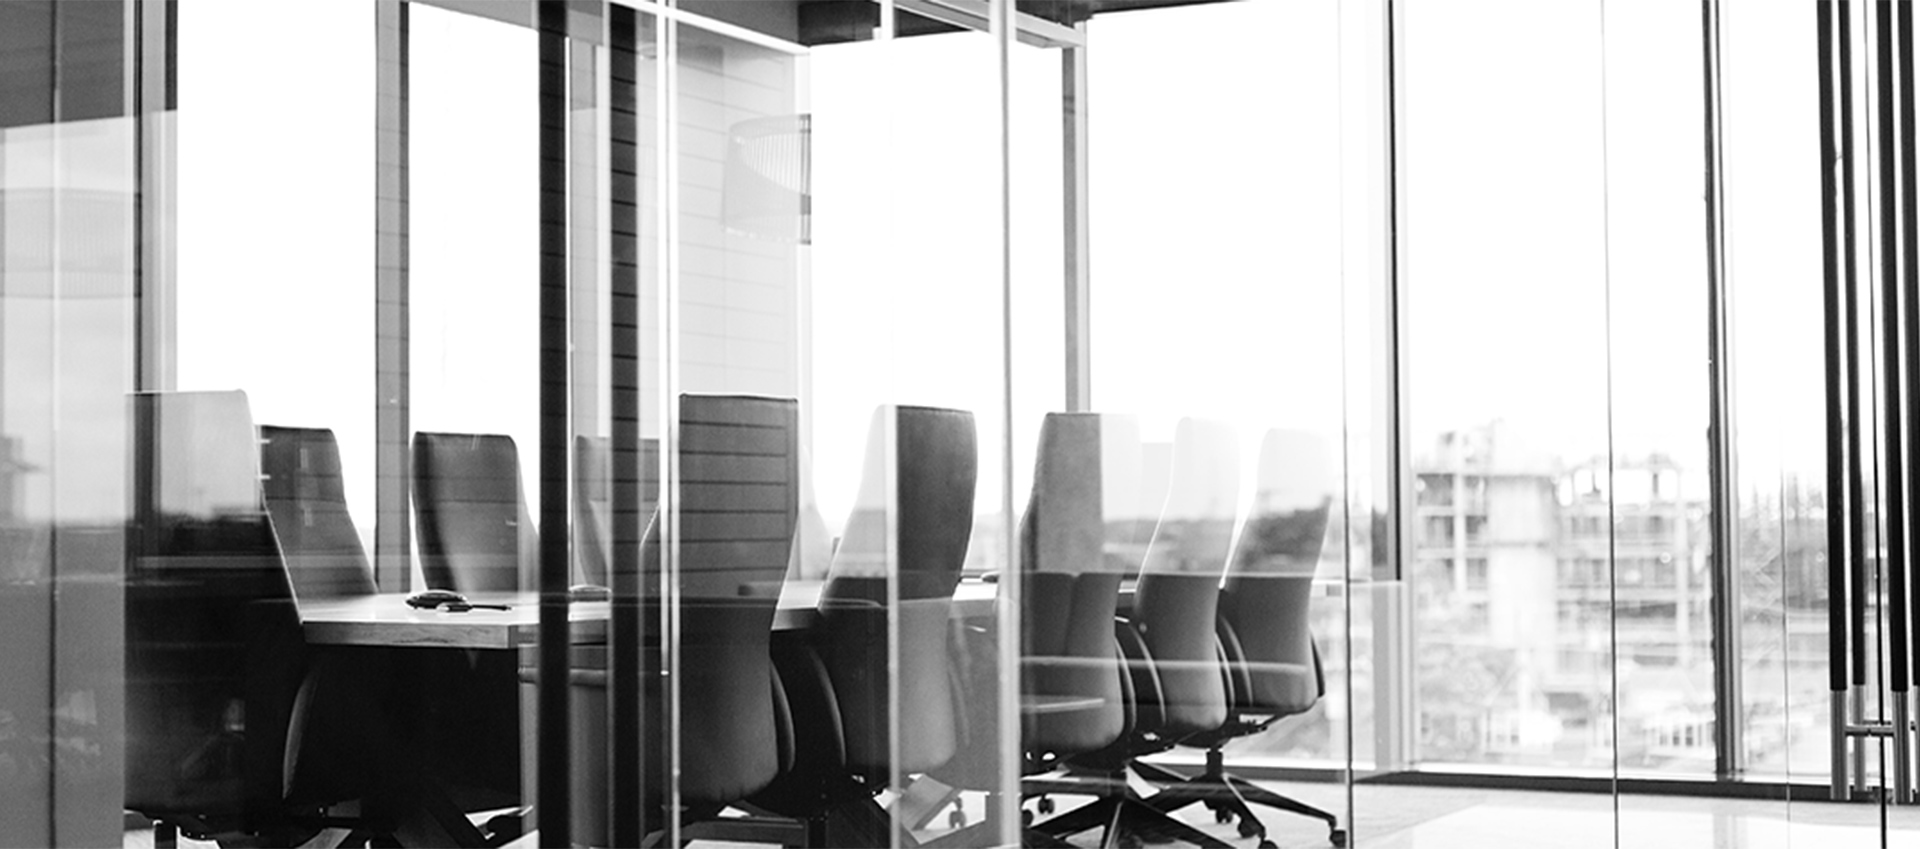 Photograph of an empty office